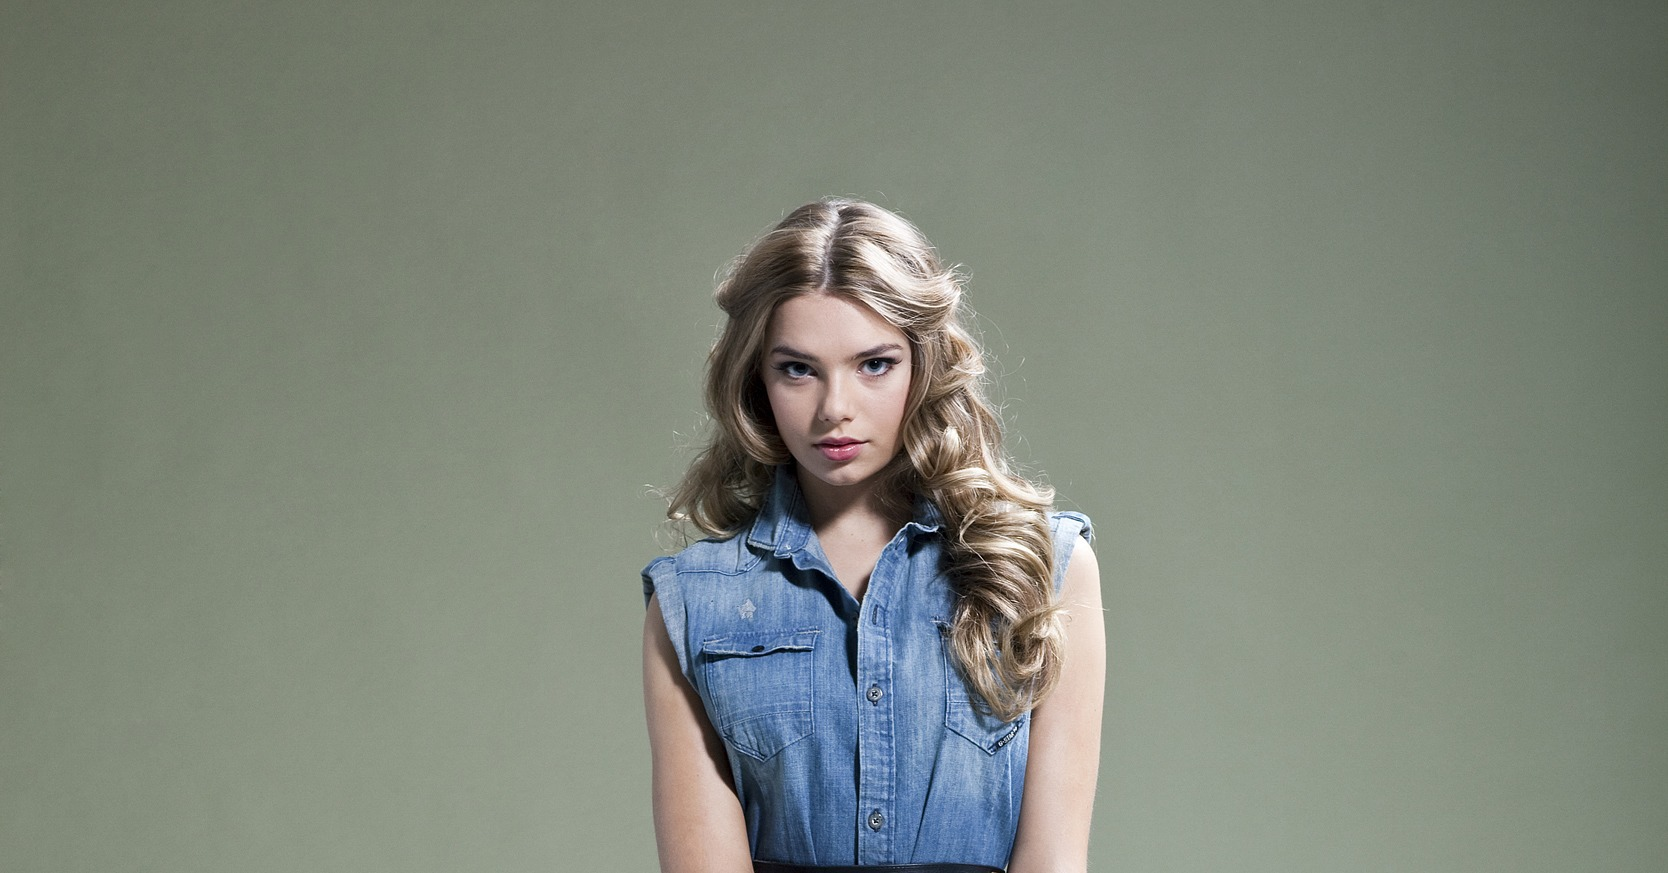 Indiana Evans awesome photo